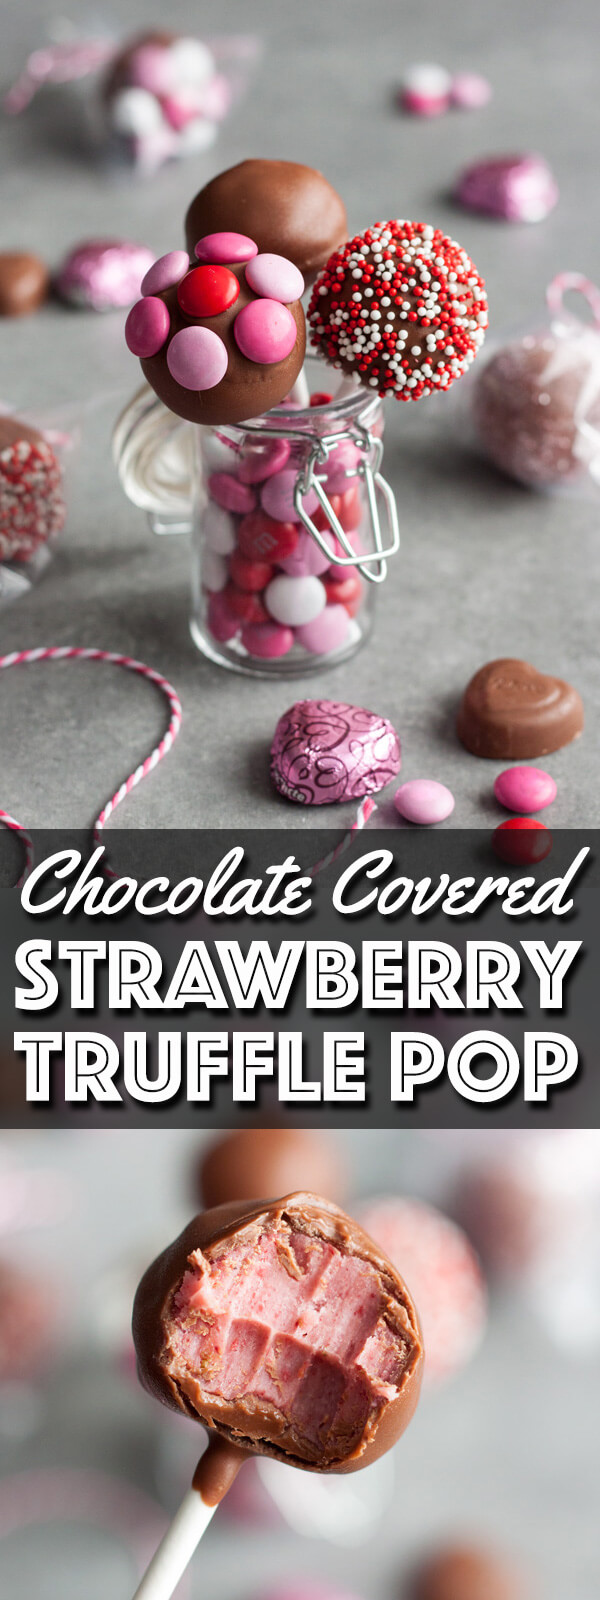 Individually wrapped Chocolate Covered Strawberry Truffle Pop is perfect for Valentine's Day gifting. | wildwildwhisk.com #SendSweetness #CollectiveBias #ad @walmart @mmschocolate @dovechocolateUS